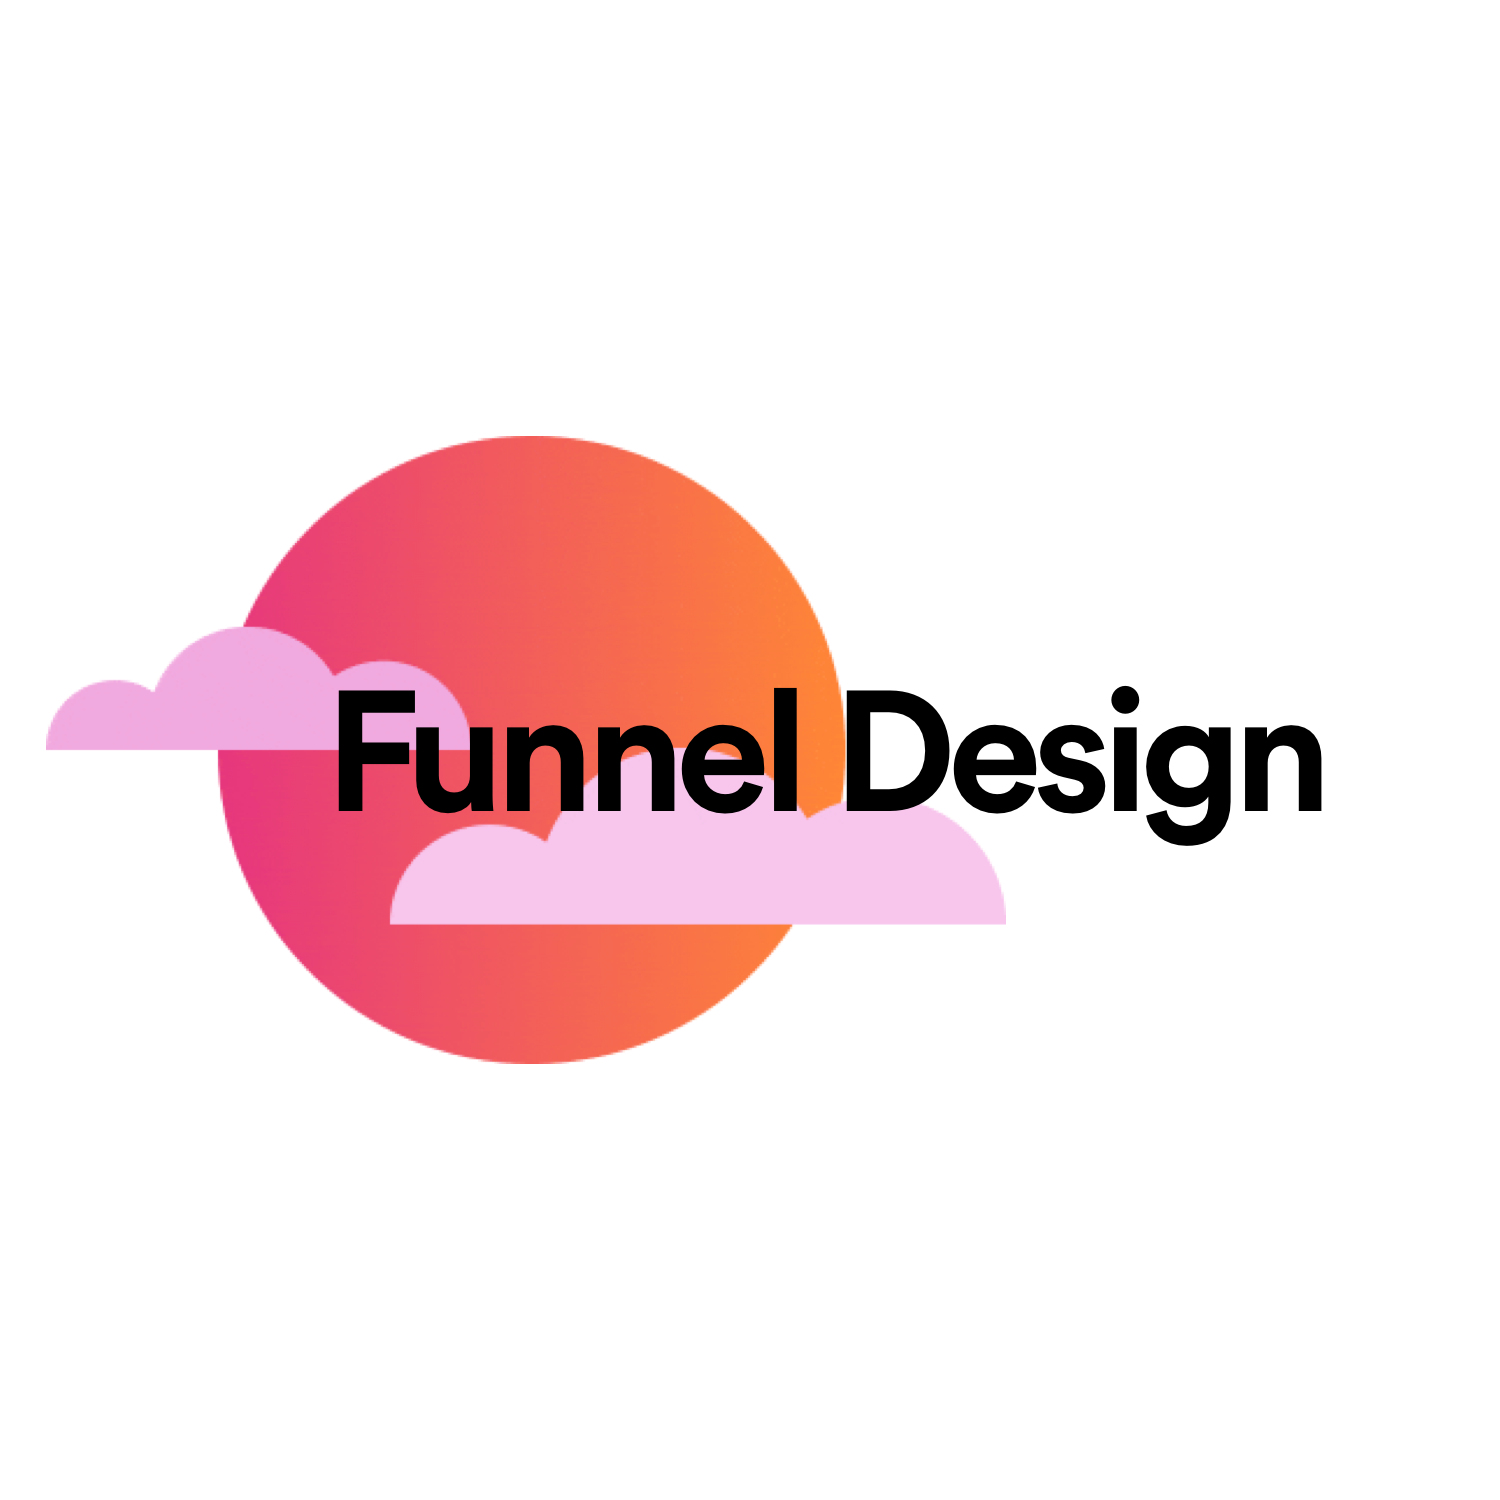 FunnelDesign Logo Copy